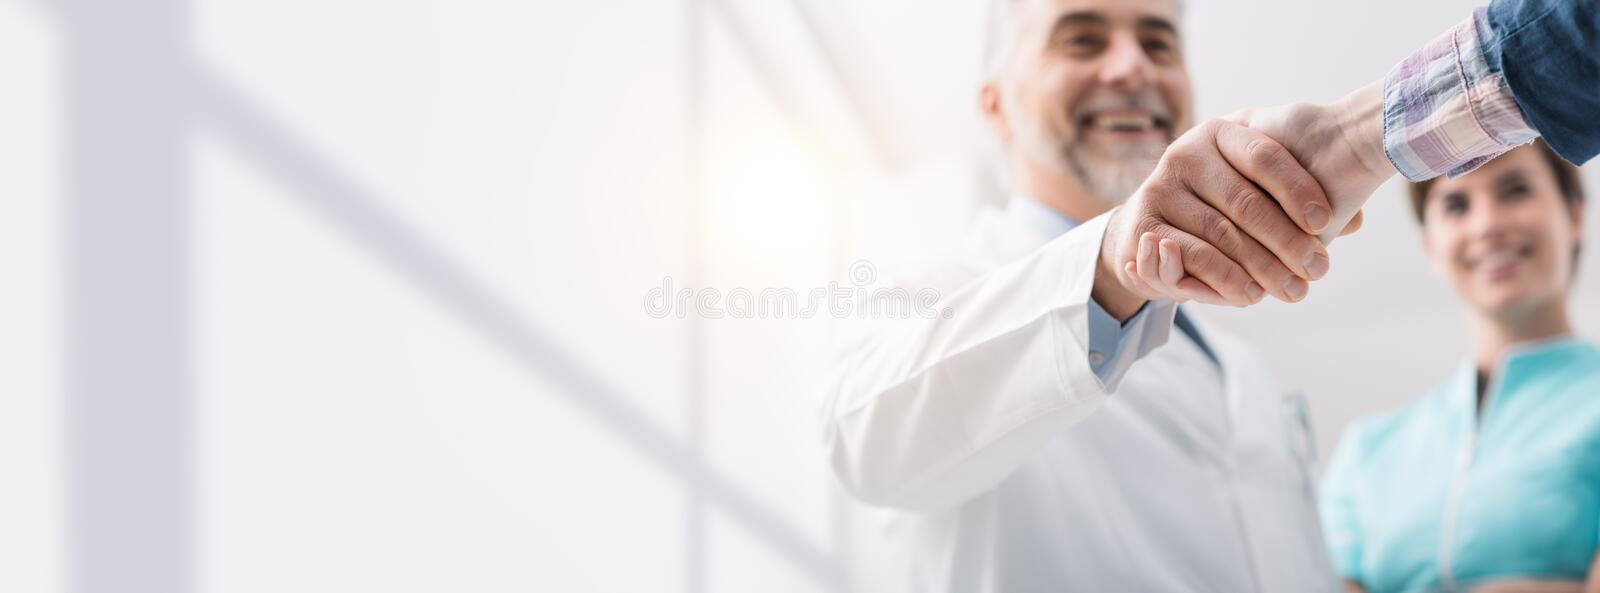 Doctor and patient shaking hands. Doctor and female patient meeting at the hospital and shaking hands, healthcare and medicine banner royalty free stock image